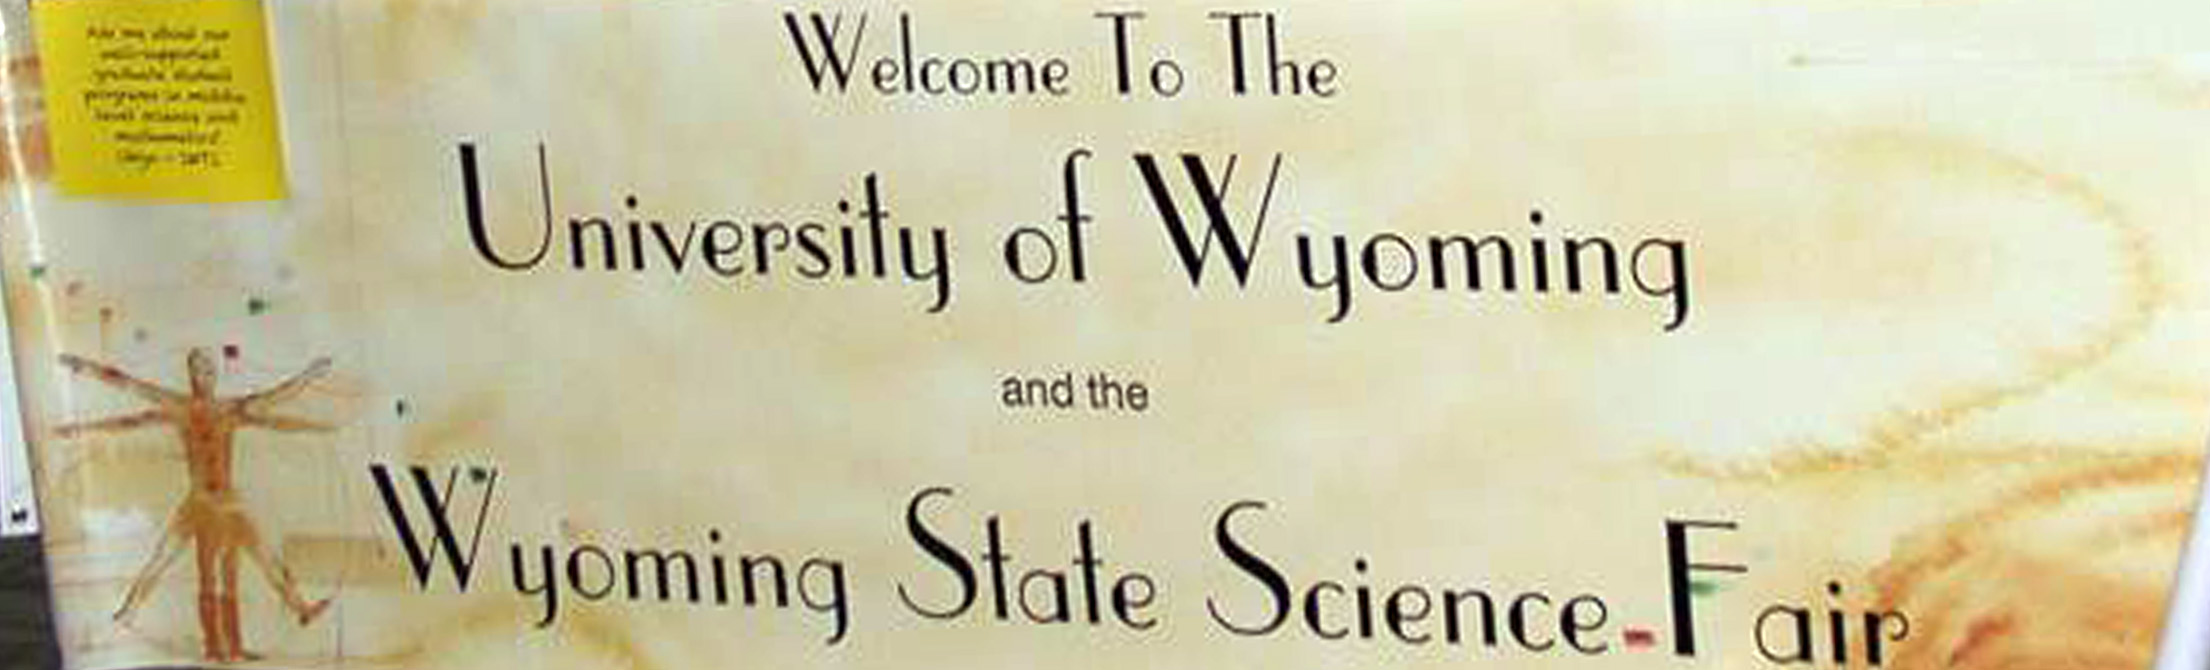 university of wyoming essay Free wyoming papers, essays, and research papers my account search results free matthew shepard, a twenty-one year old university of wyoming student.